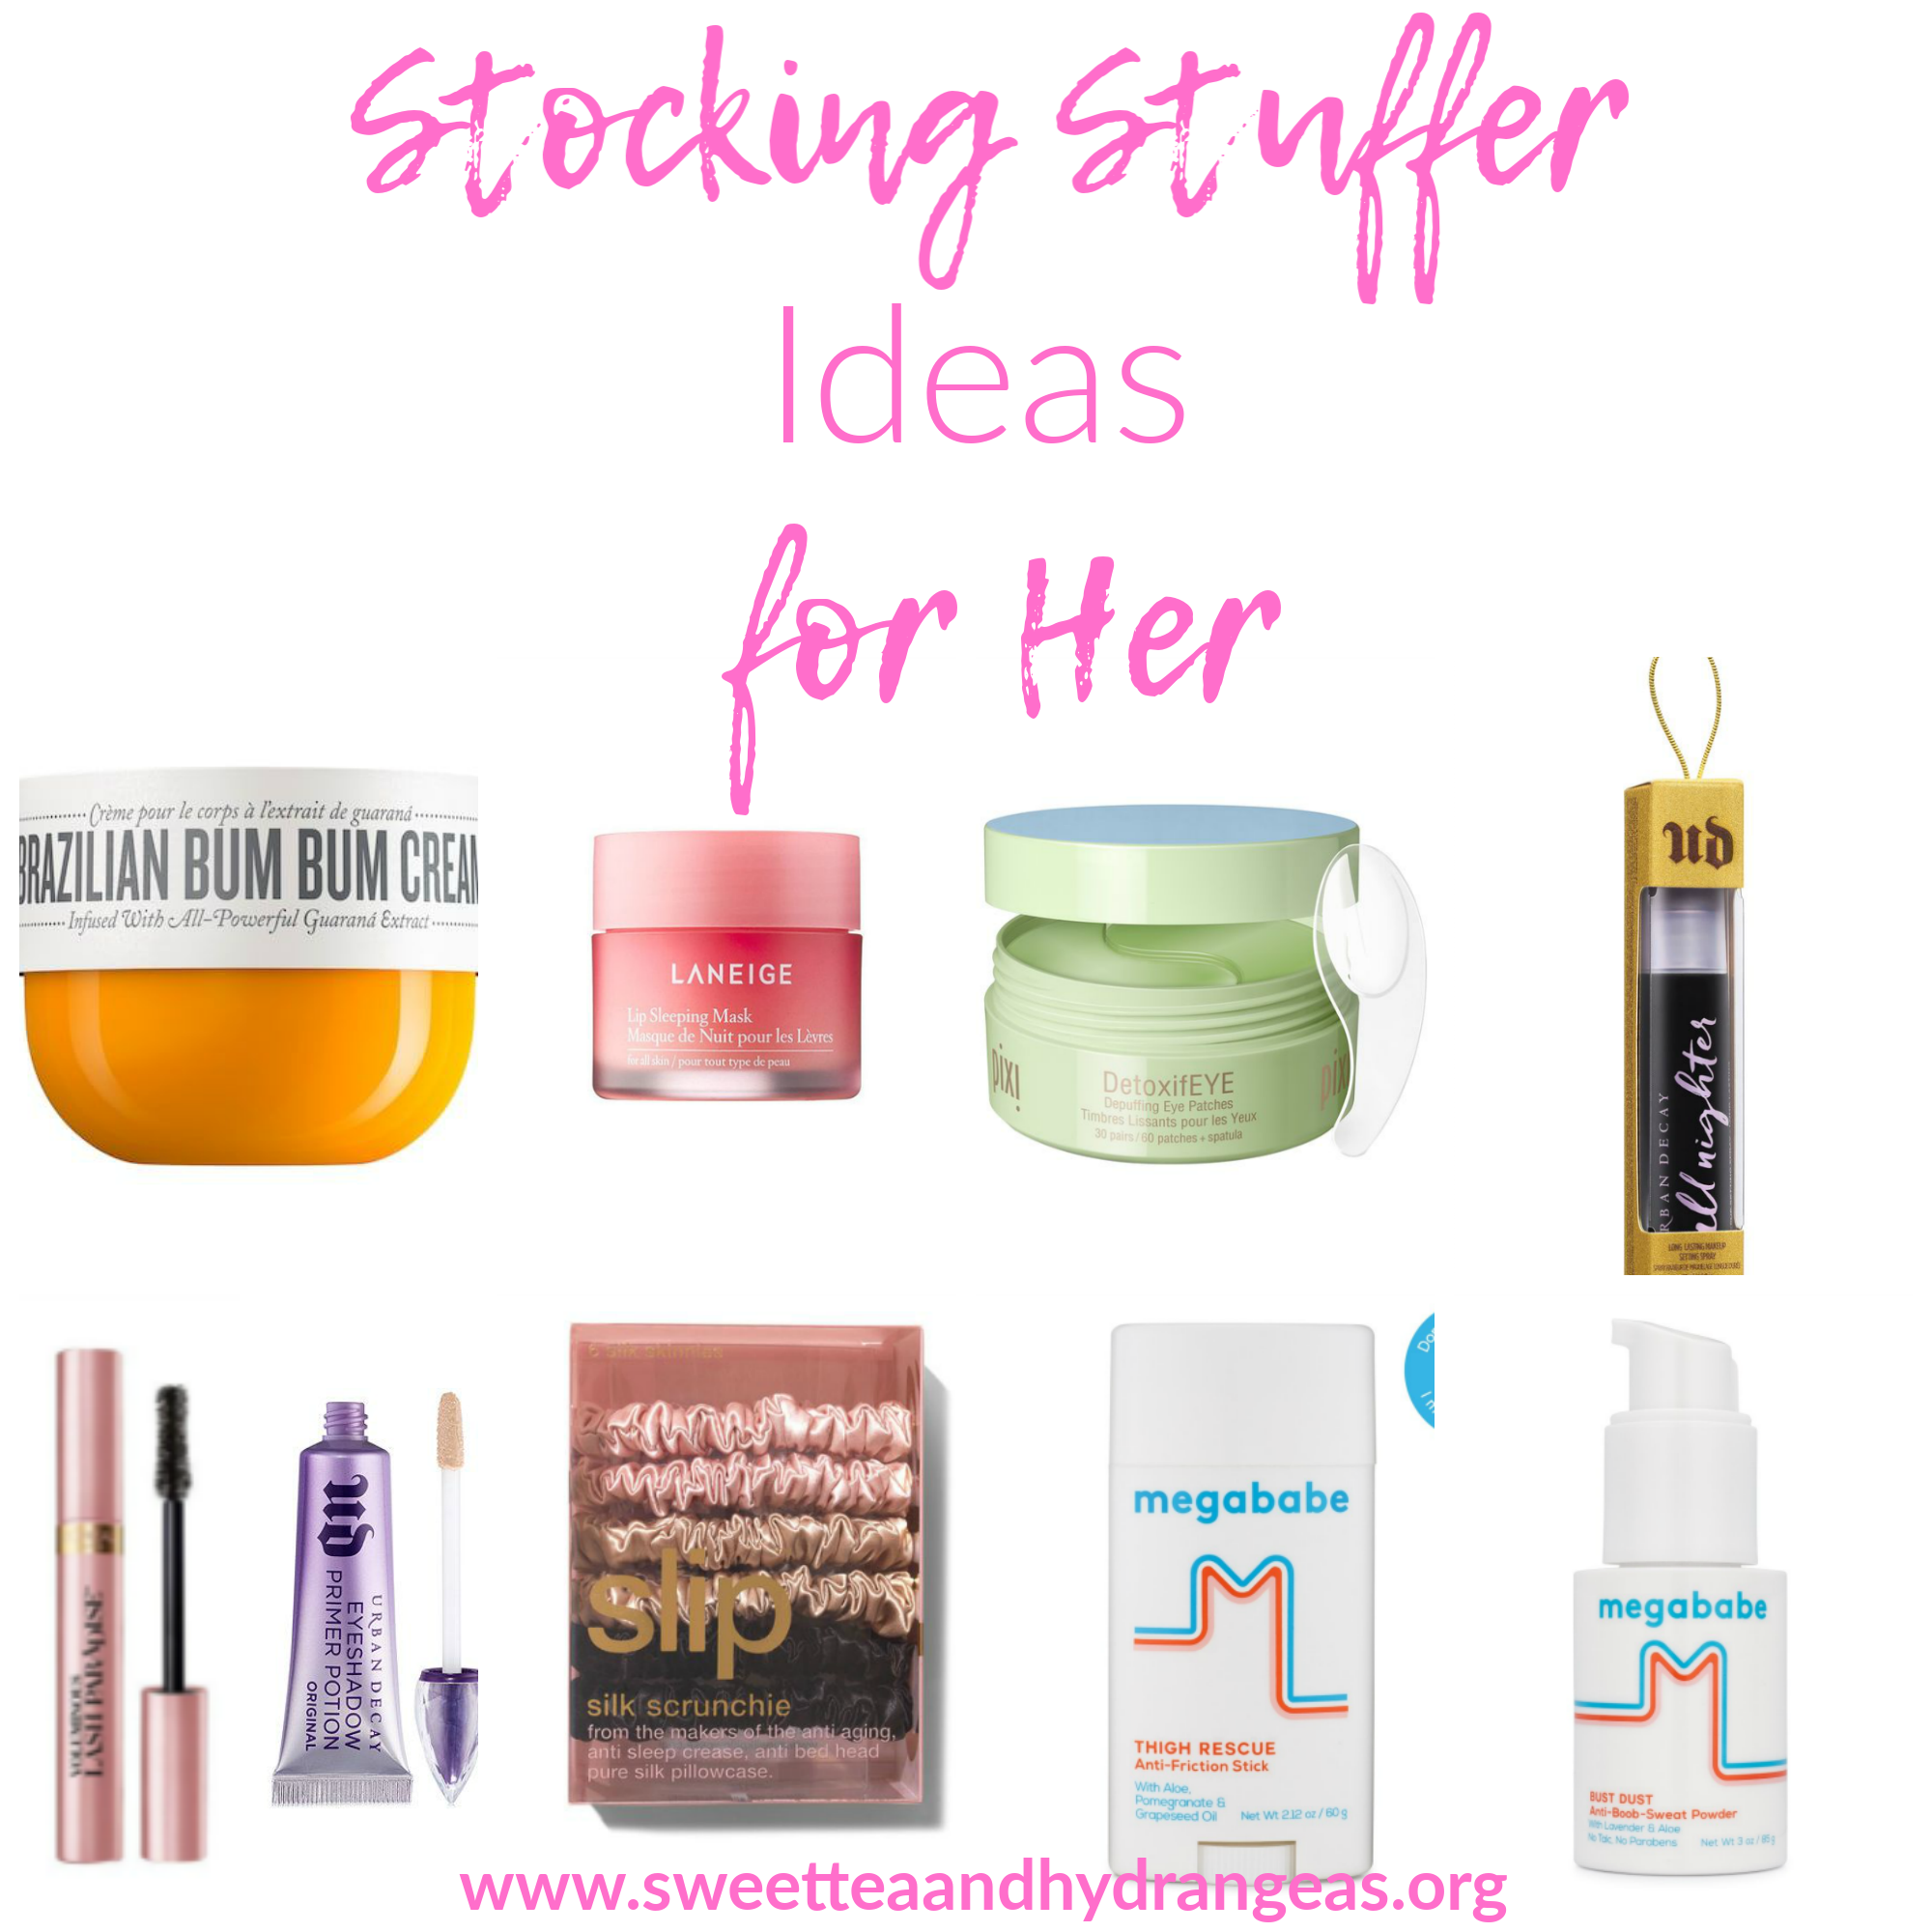 Sweet Tea & Hydrangeas Stocking Stuffer Ideas for Her